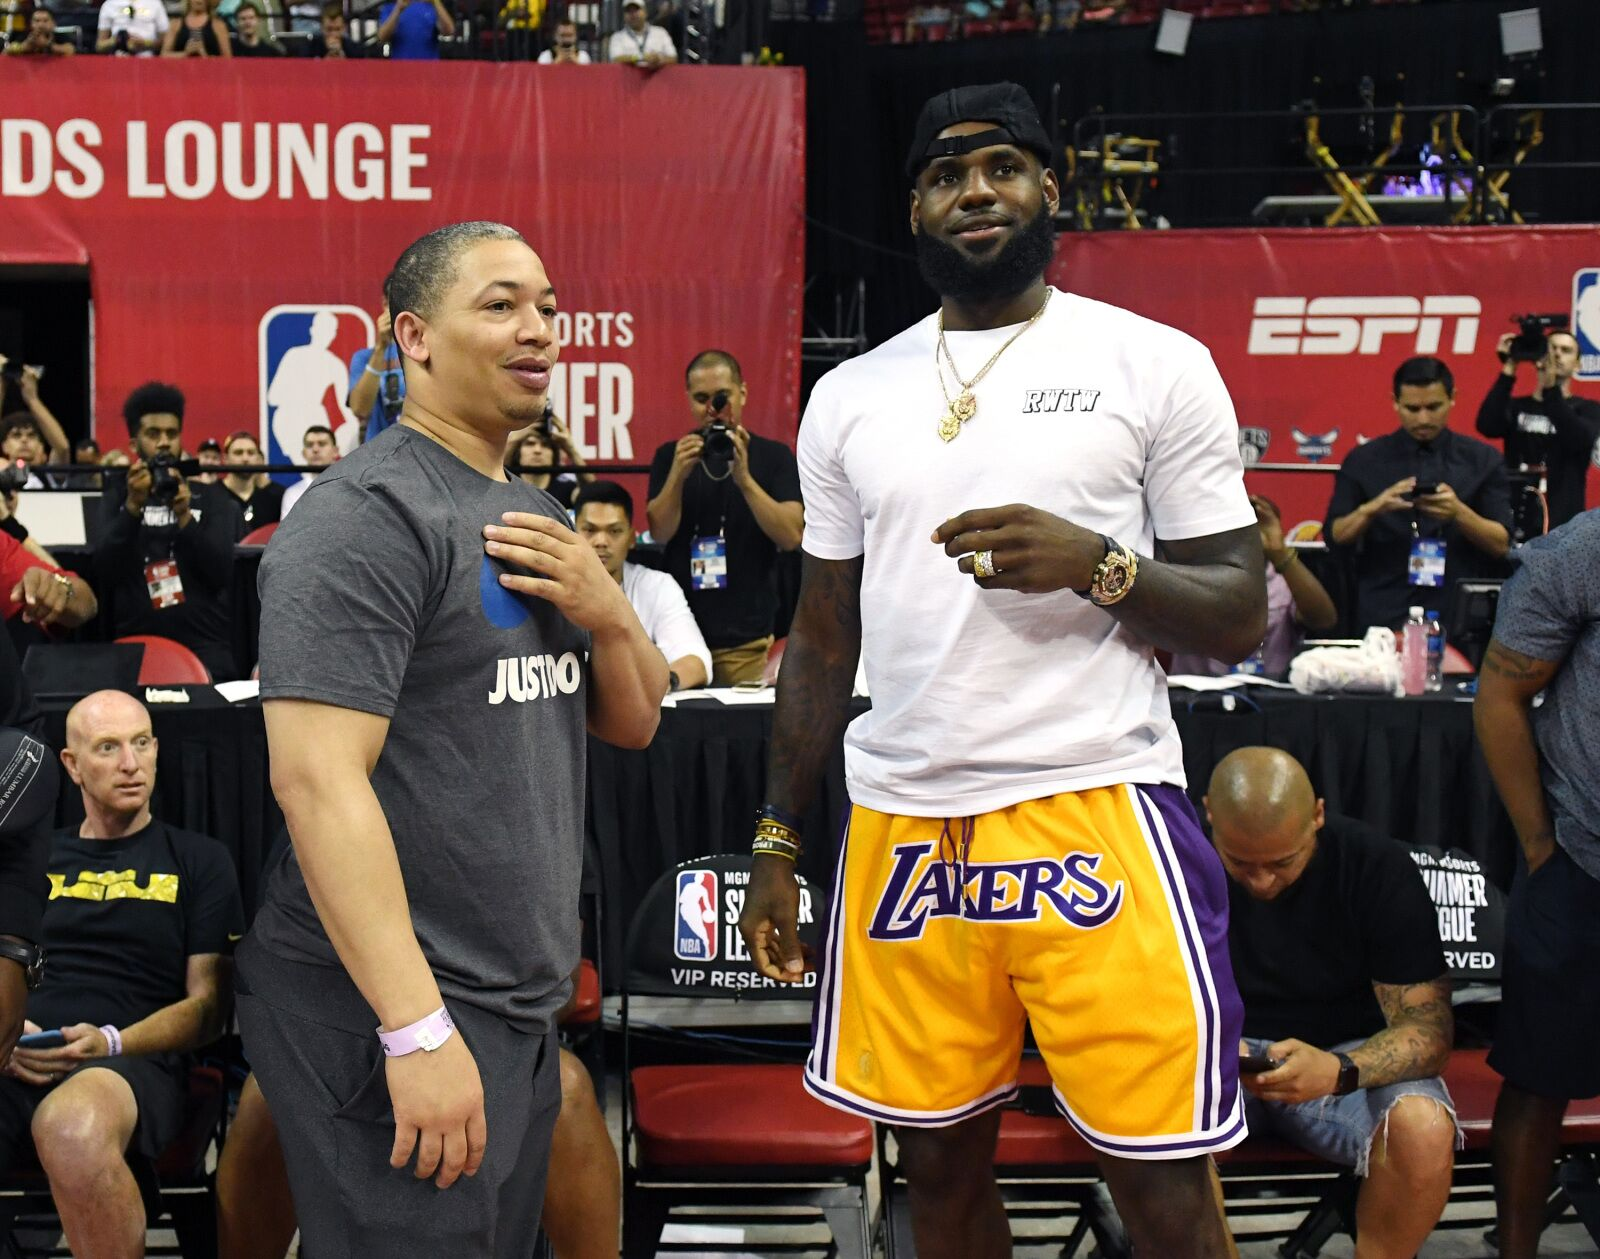 559812a32a6 LeBron James  Los Angeles Lakers Back to Showtime Lakers